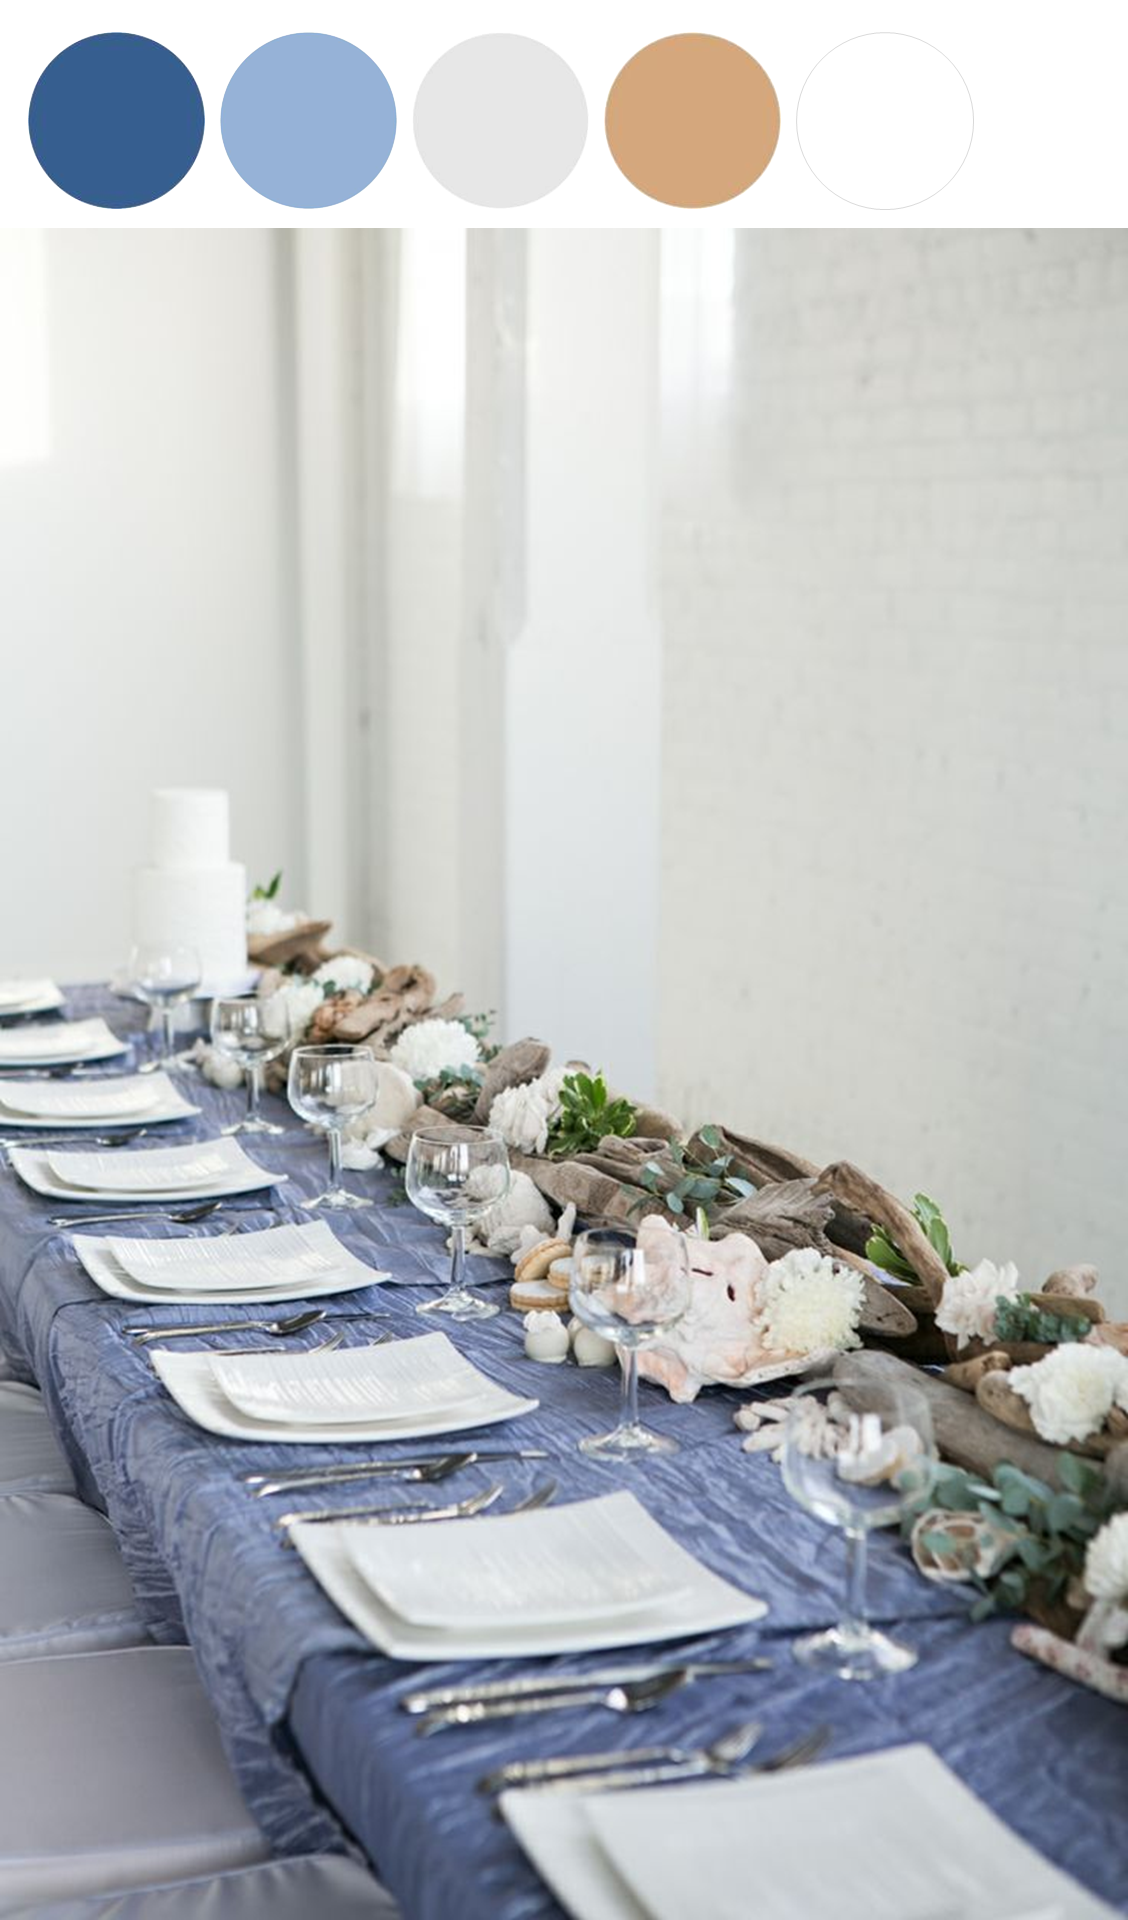 Ocean Chic: Styled Pretty - www.theperfectpalette.com - Color Ideas for Weddings + Parties